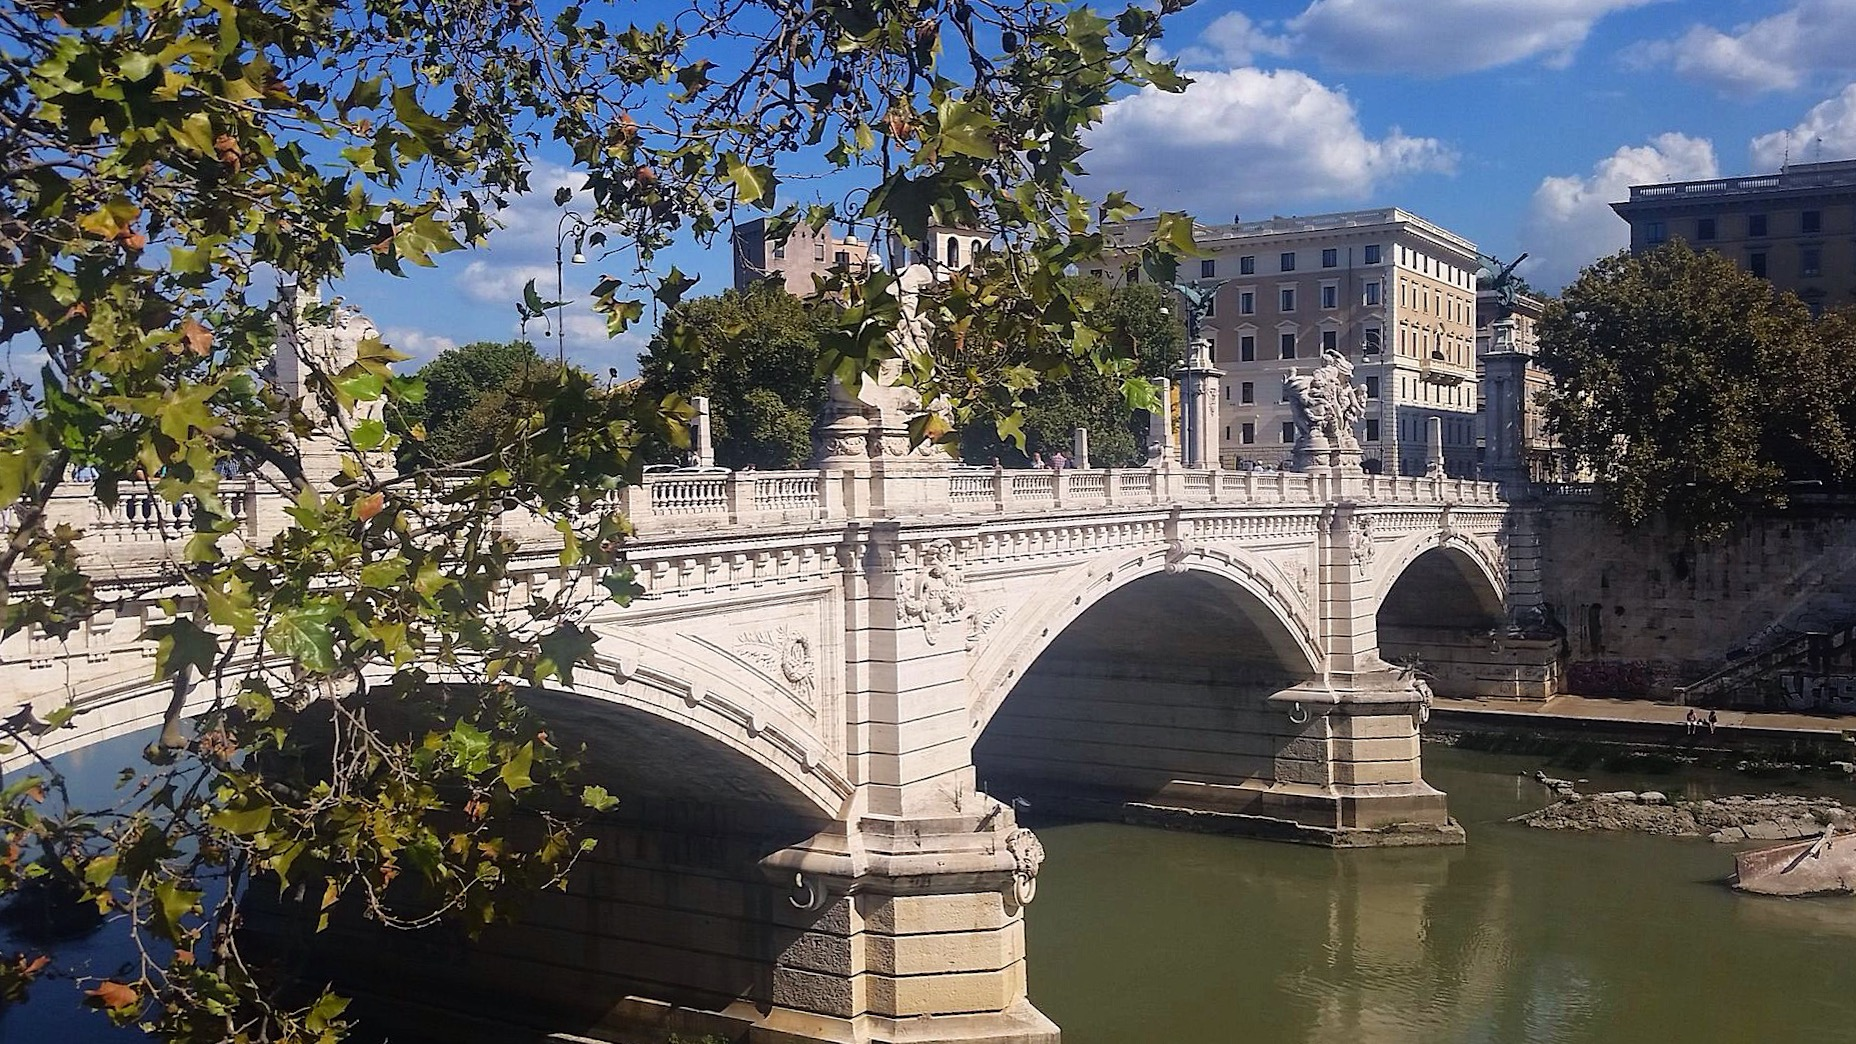 Bridge-Rome-Tiber-River